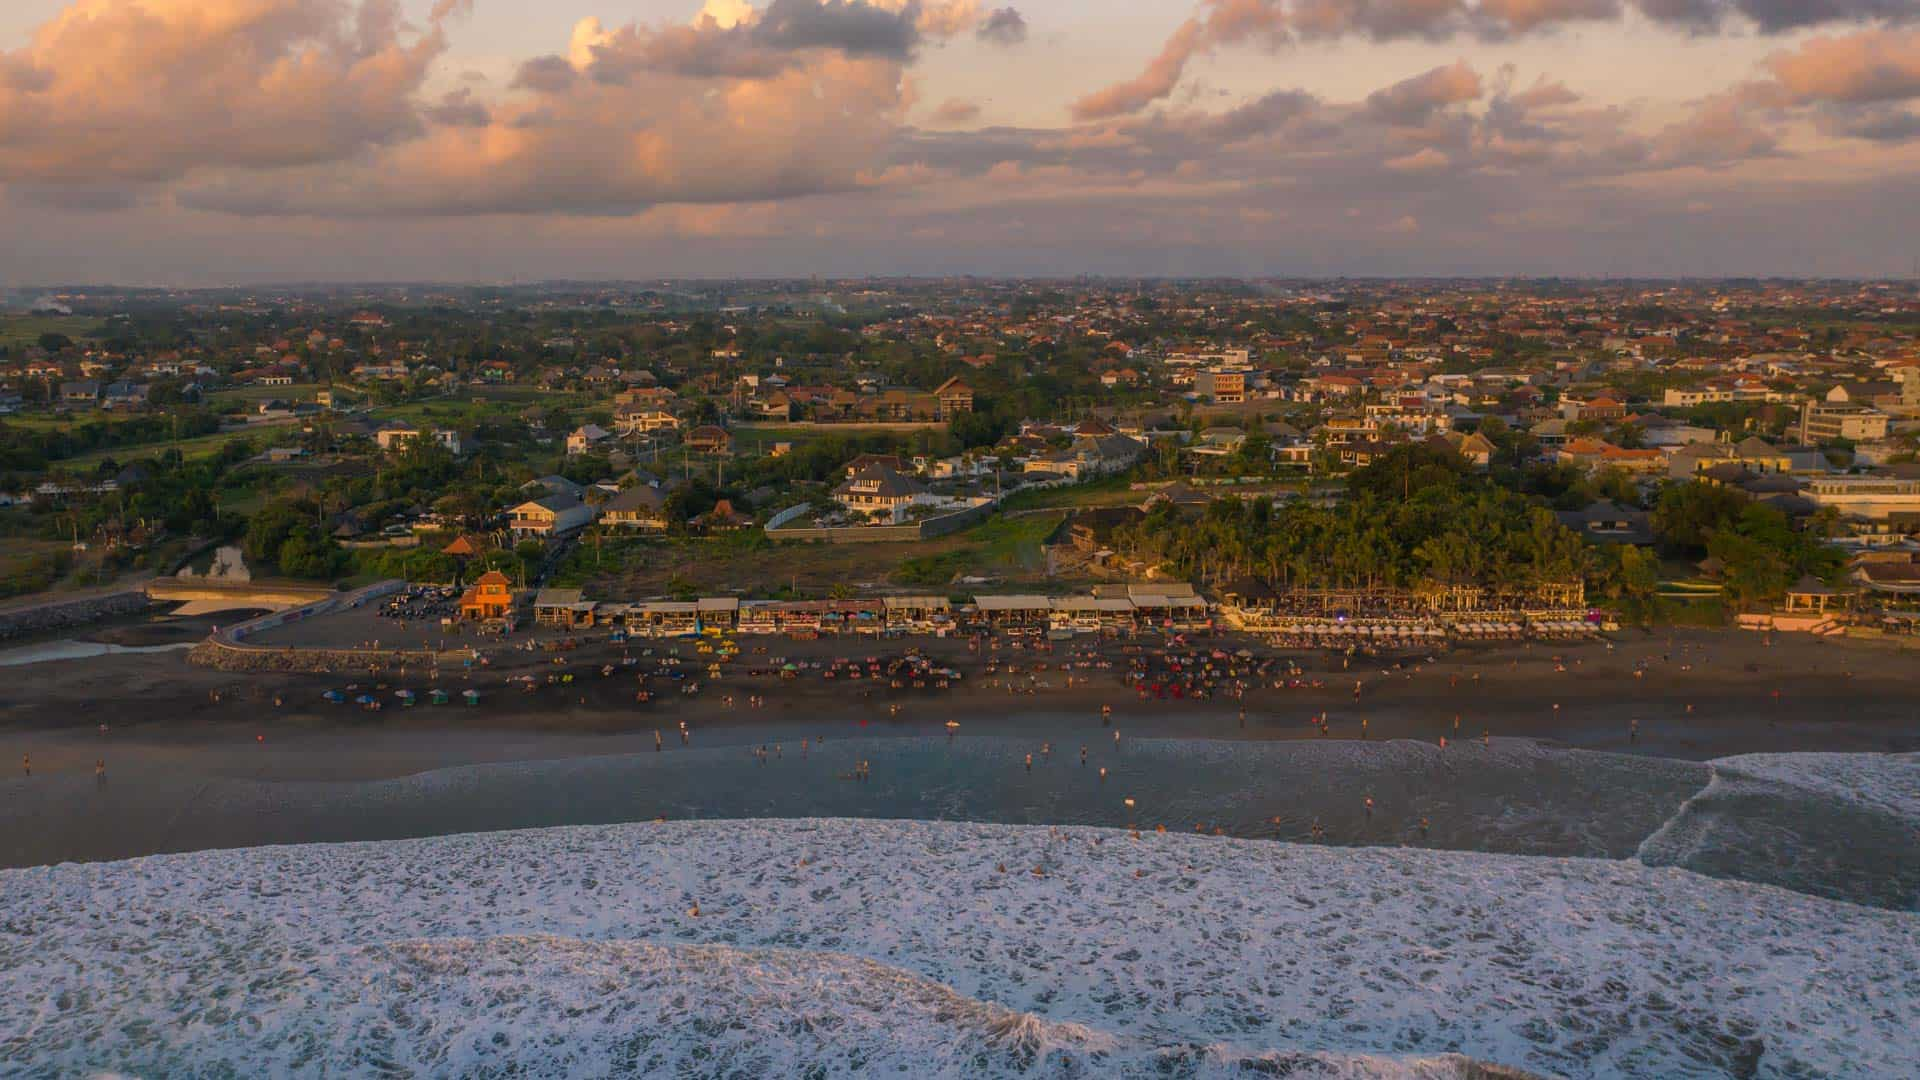 echo-beach-canggu-sunset